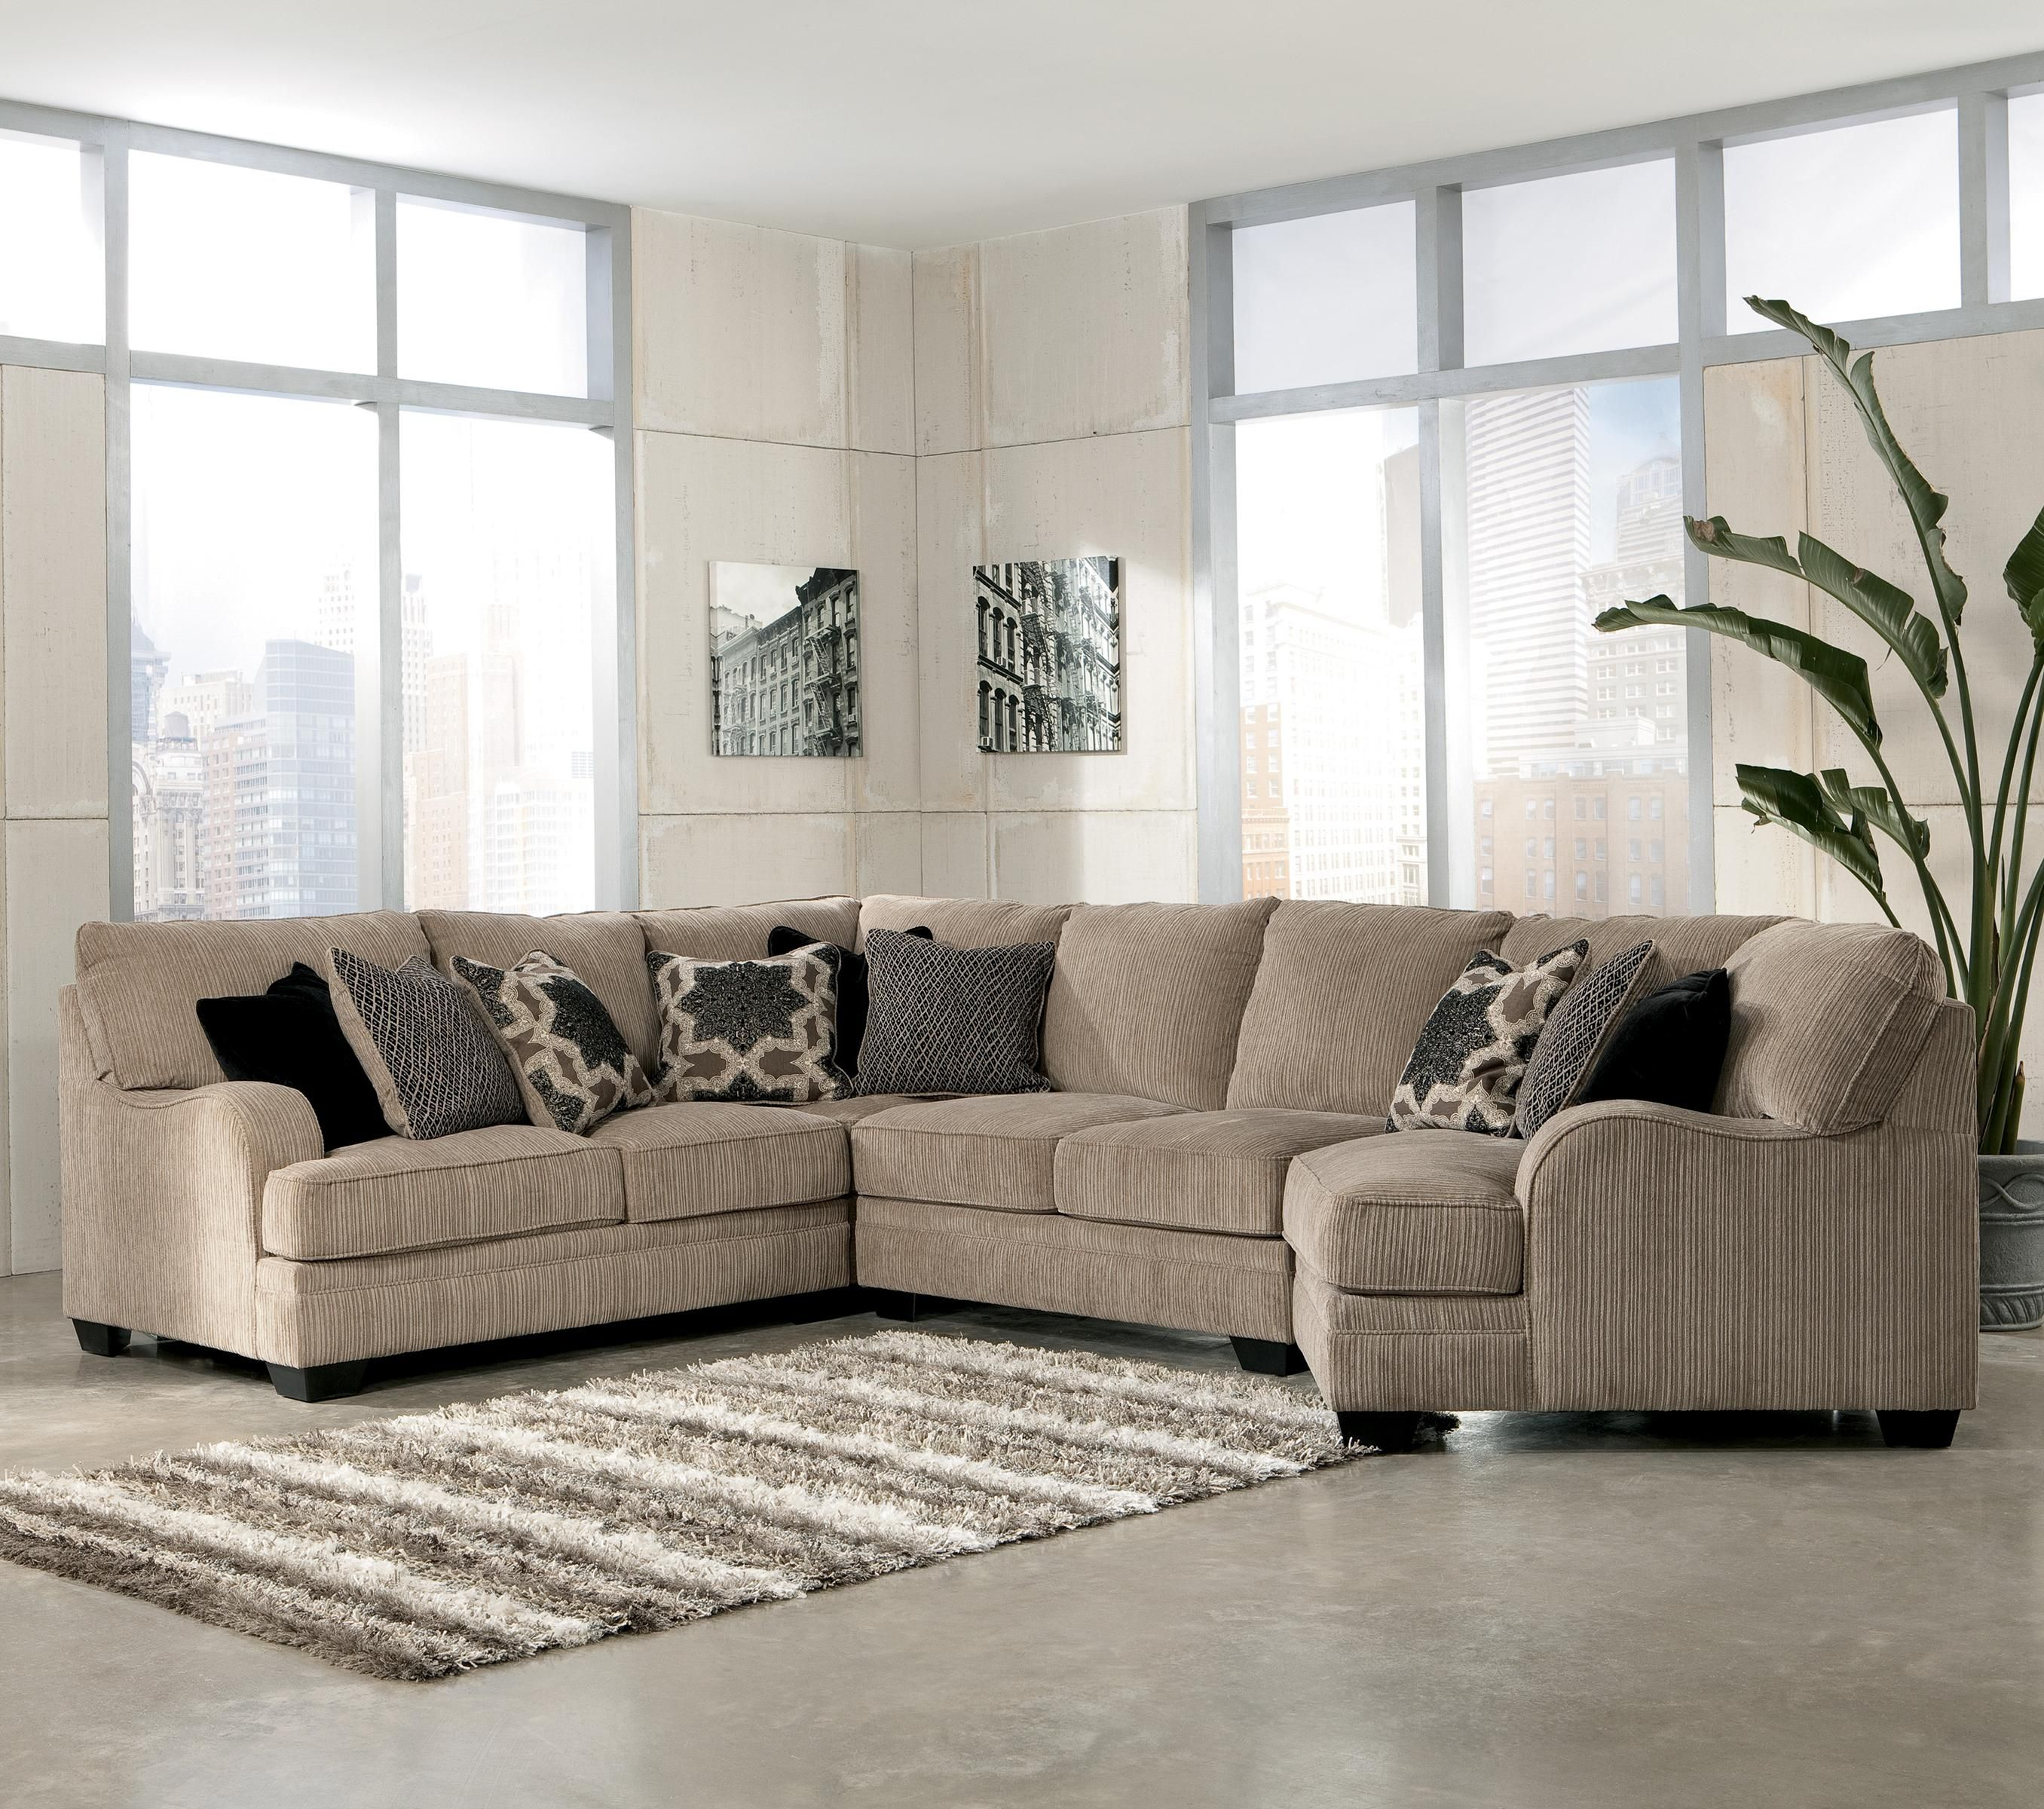 Katisha platinum 4 piece sectional sofa with right - 4 chairs in living room instead of sofa ...